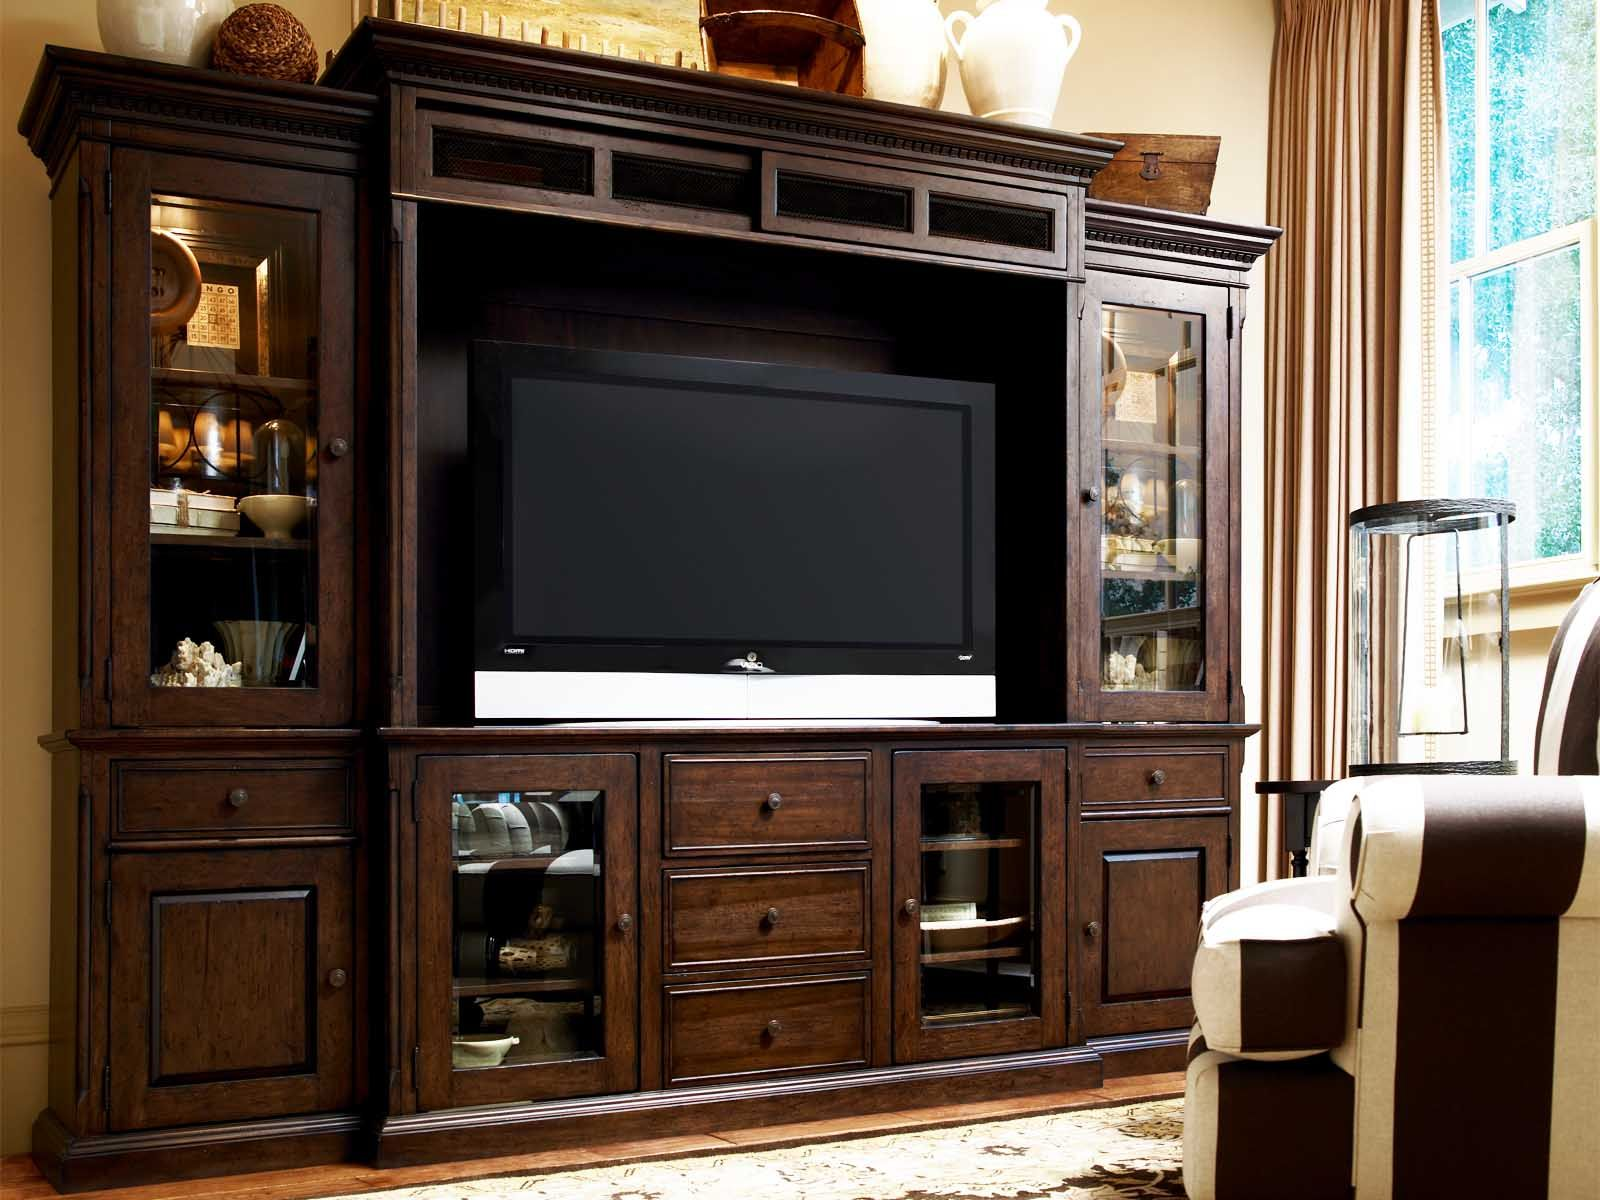 Universal Furniture Paula Deen Home Entertainment Console Wall Enchanting Living Room Cupboard Furniture Design Design Ideas